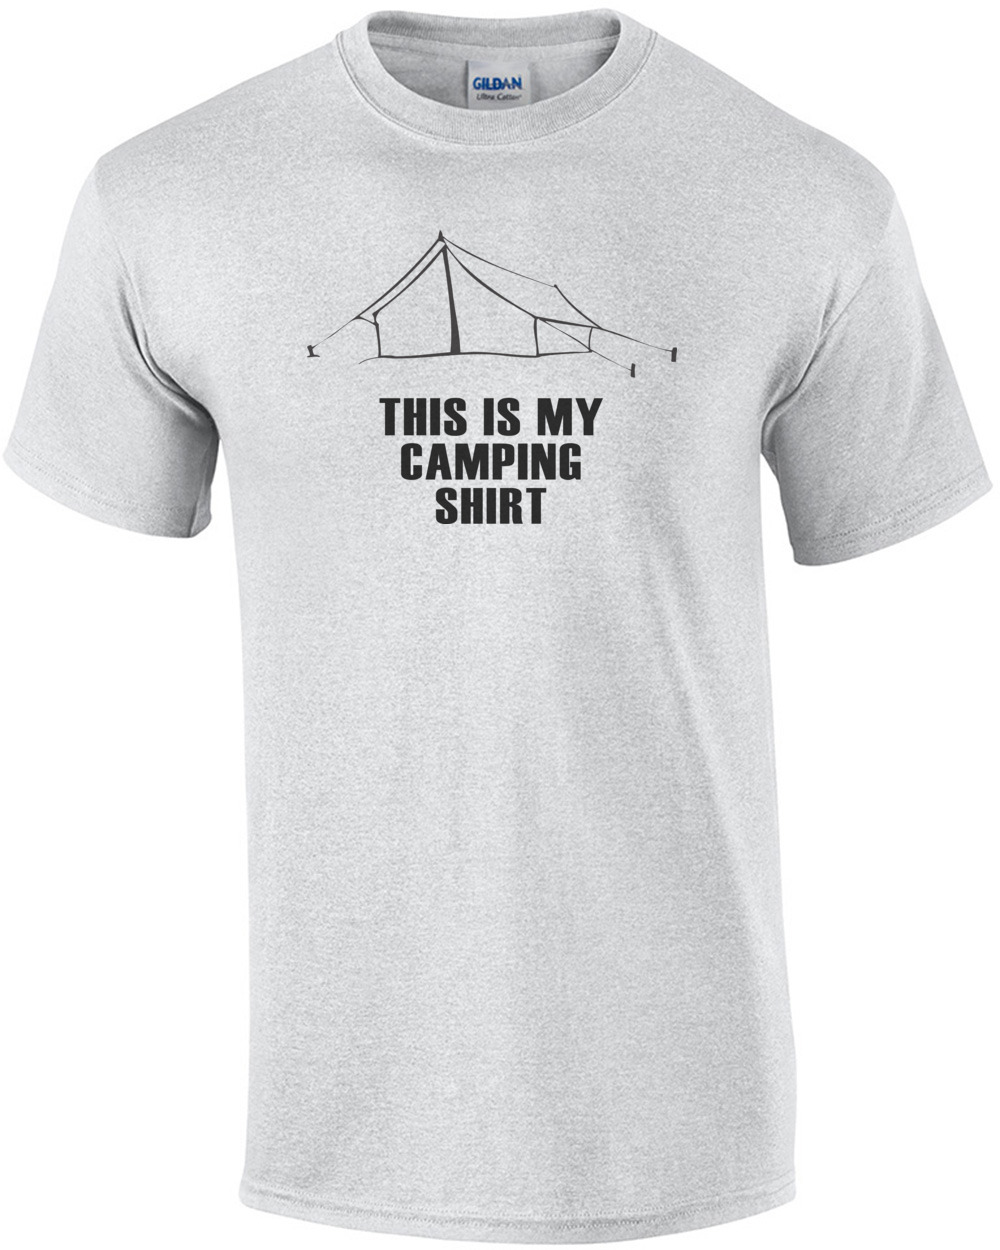 This Is My Camping Shirt Camping T Shirt